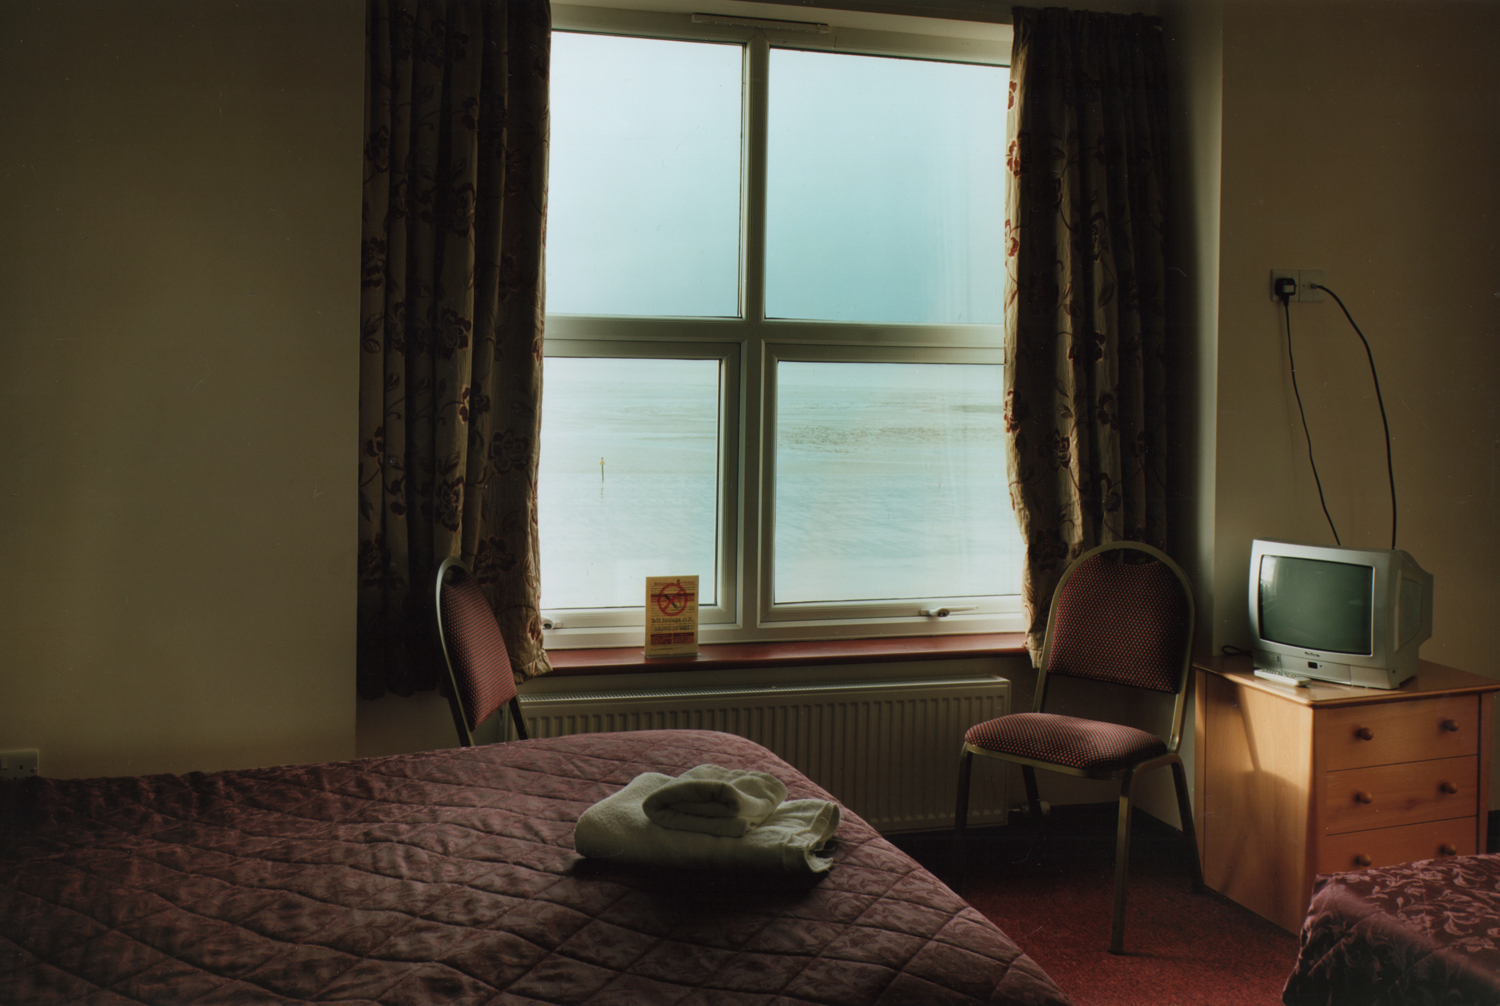 Room 31, Weston Super Mare, Somerset